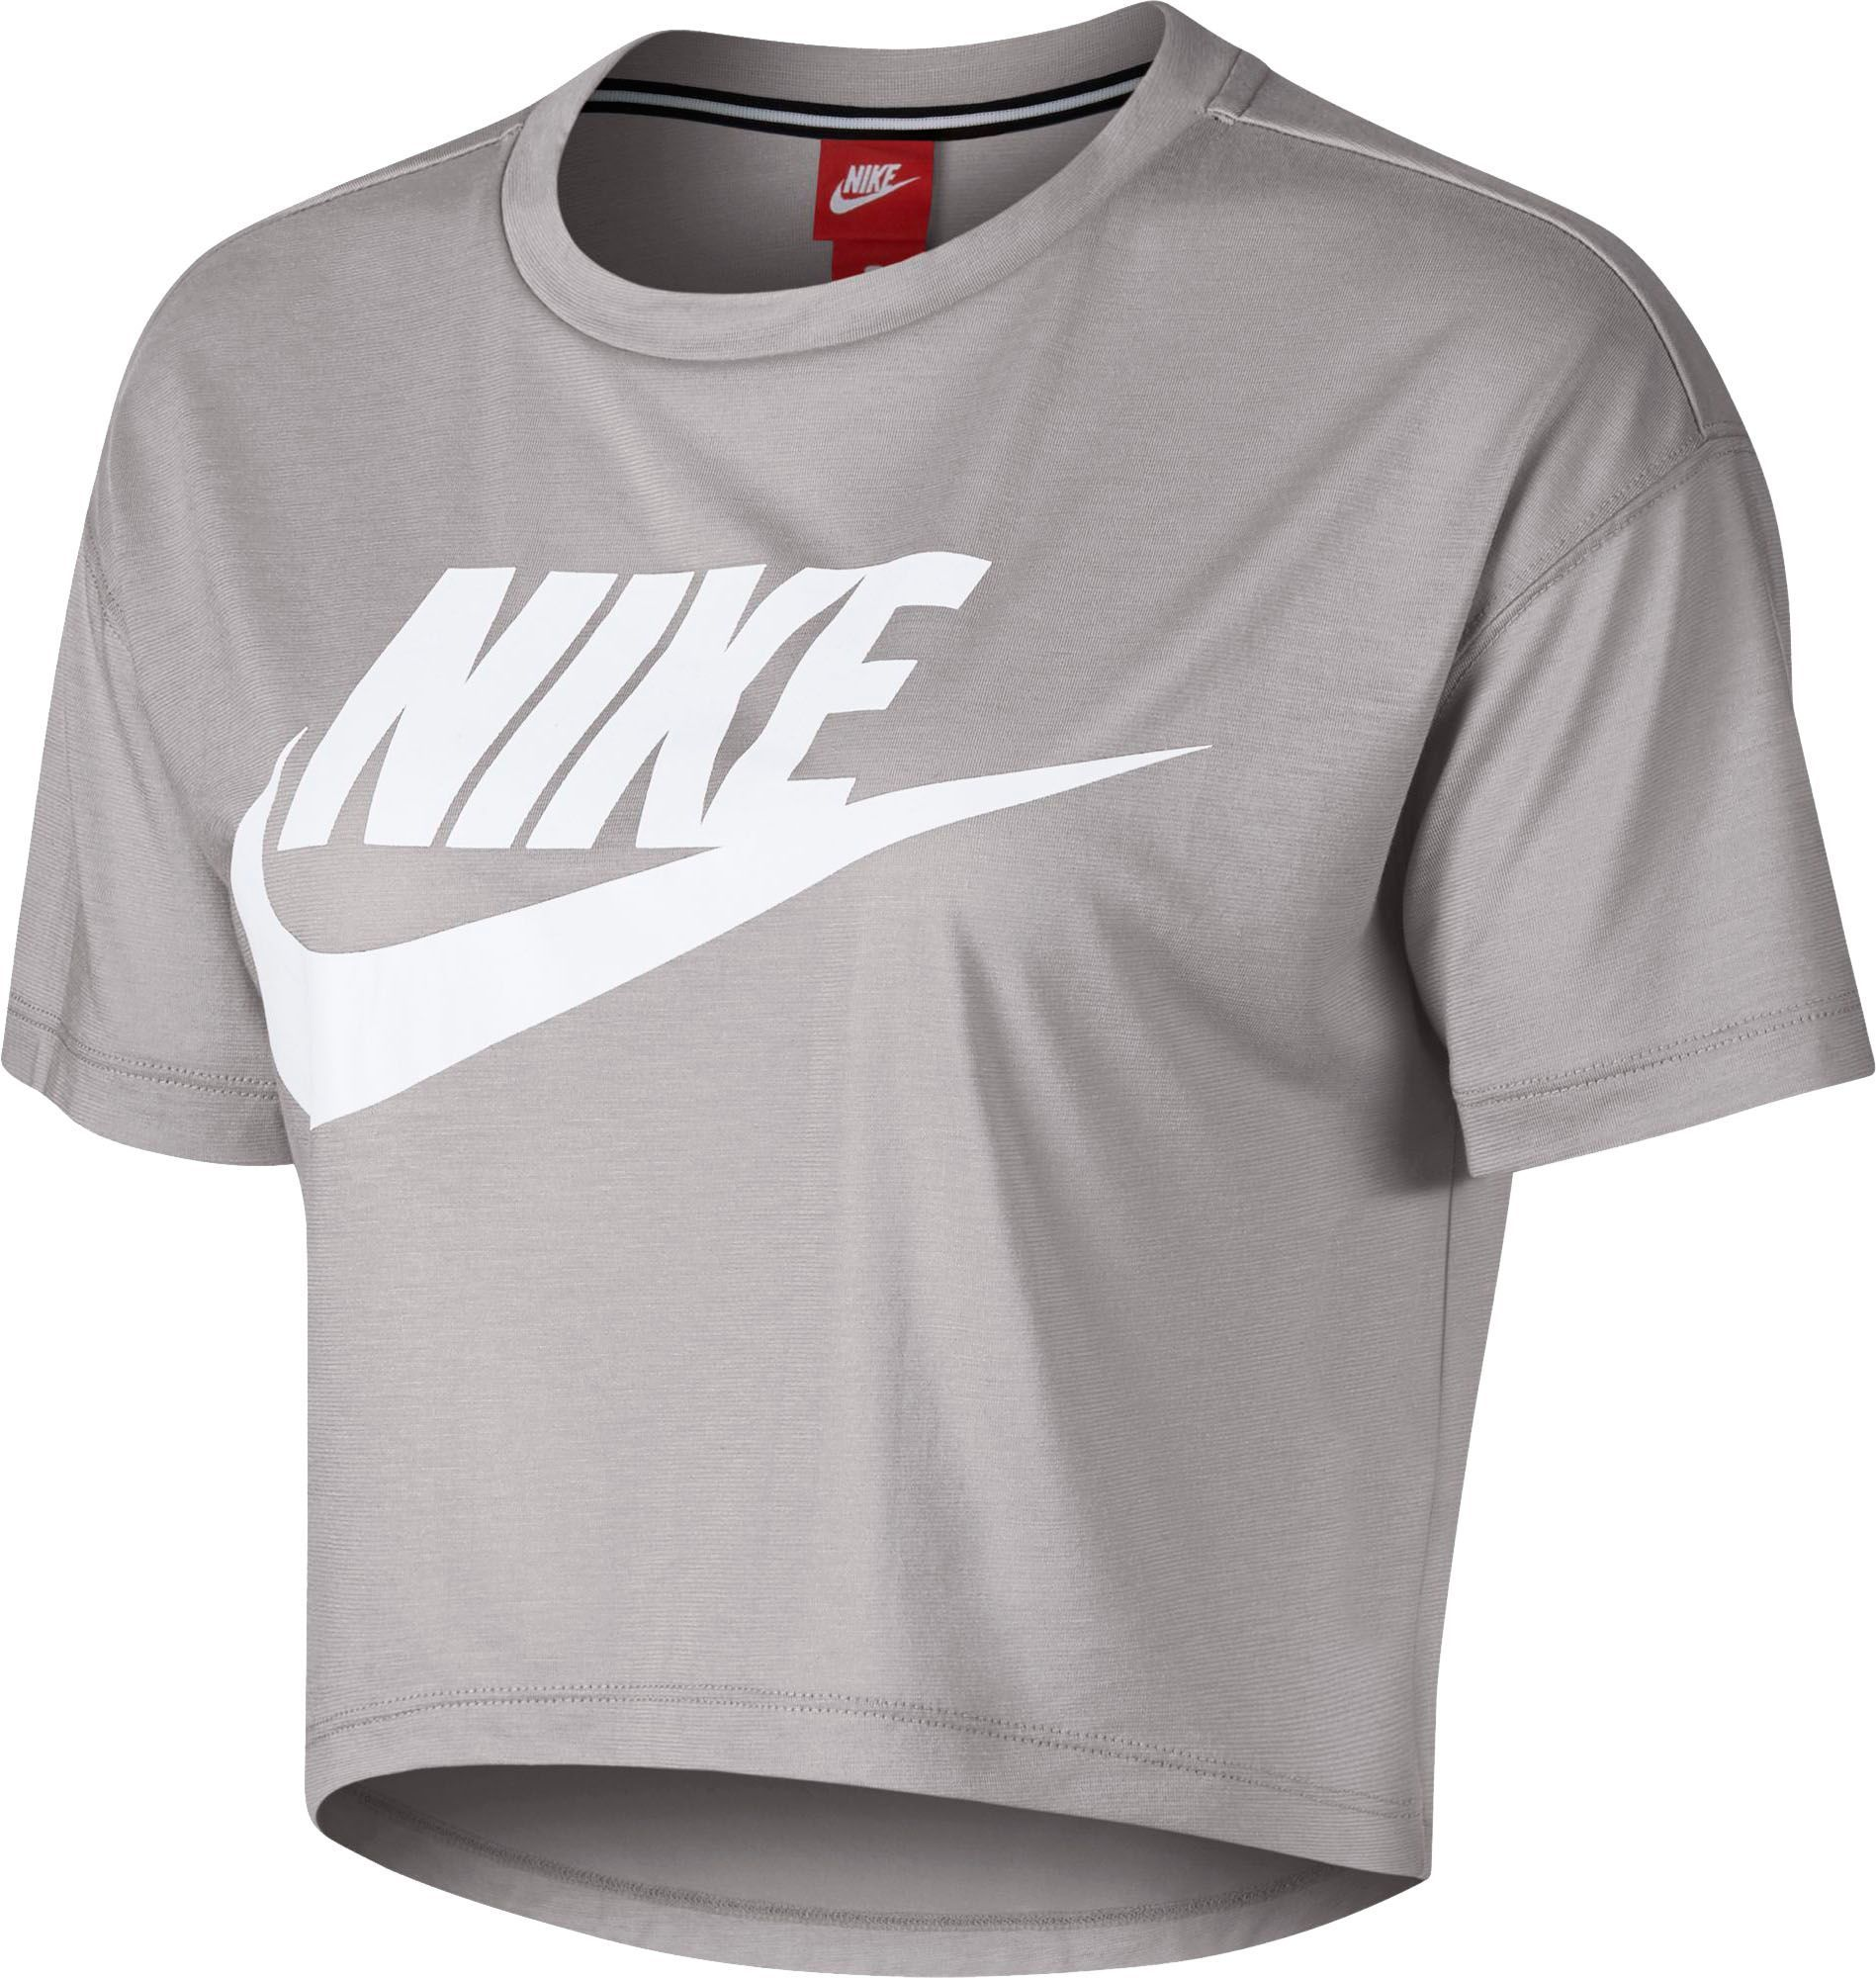 4fd9cd218b44a3 Nike Women s Essential Cropped T-Shirt